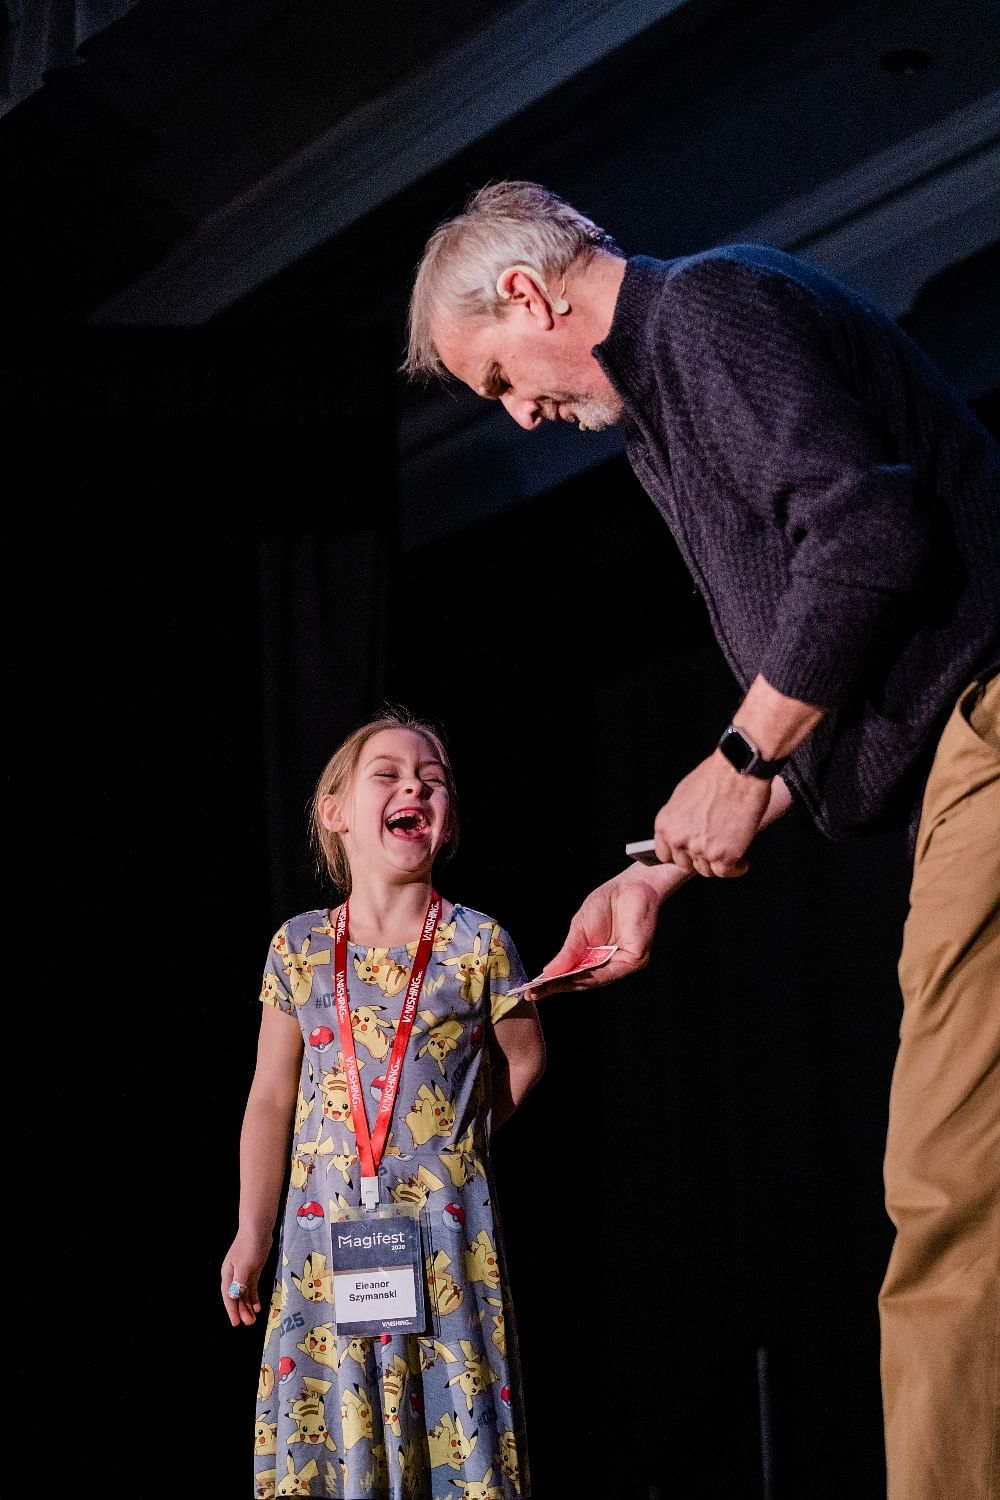 A young girl in a Pikachu dress has a huge smile on her face after seeing magician David Williamson perform a card trick